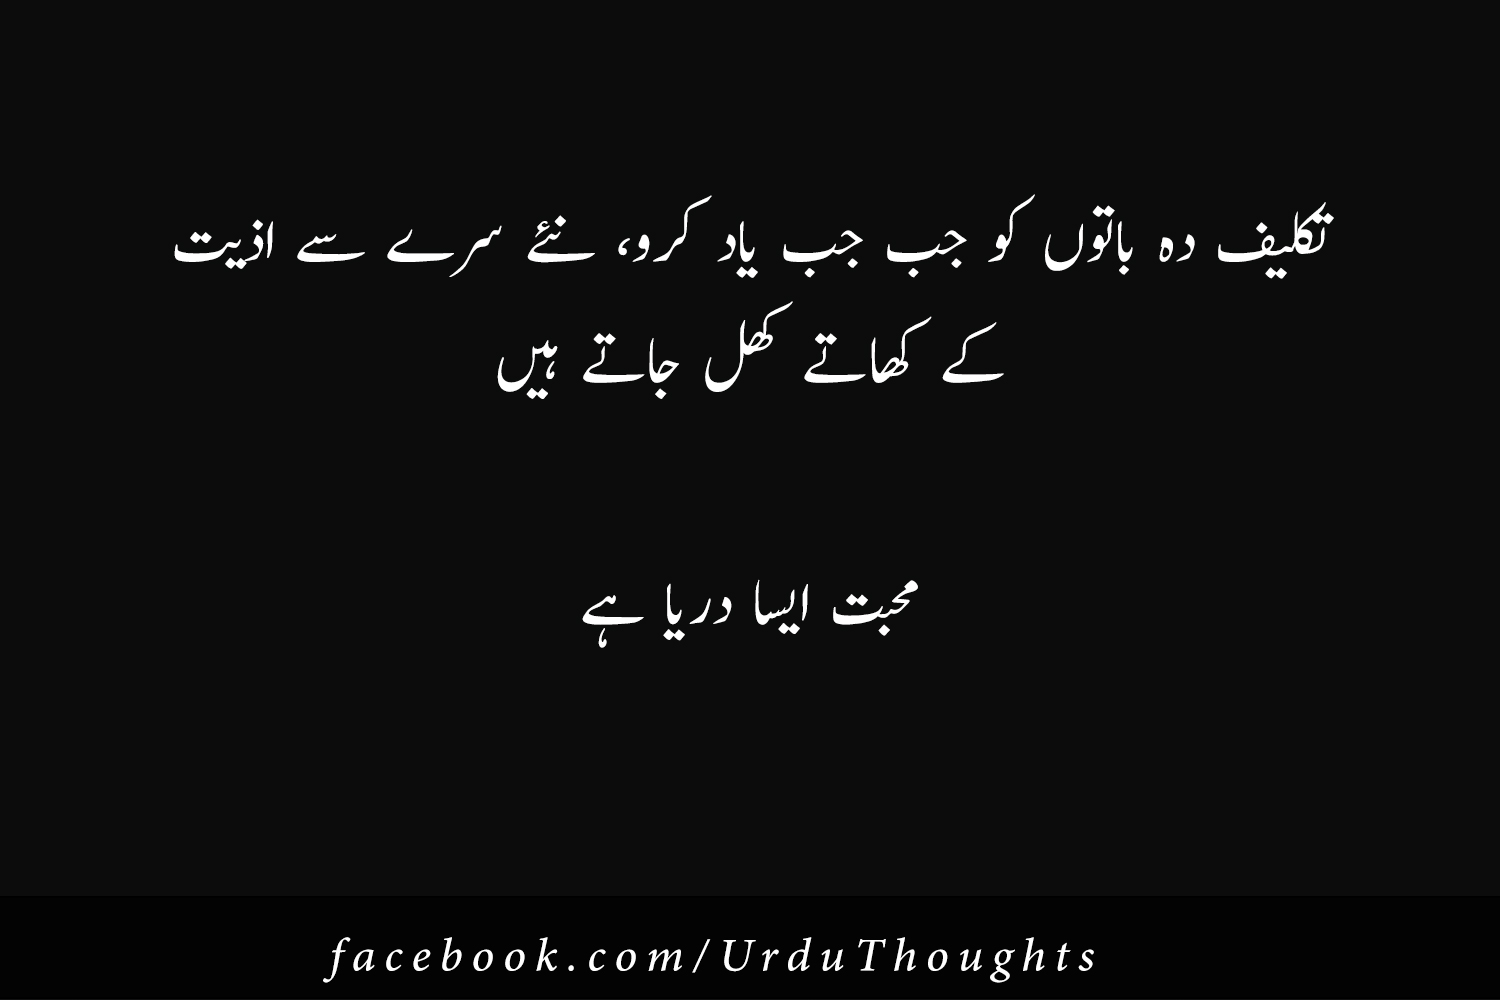 Beautiful Saying Quotes in Urdu Wallpapers Photos - Urdu ...